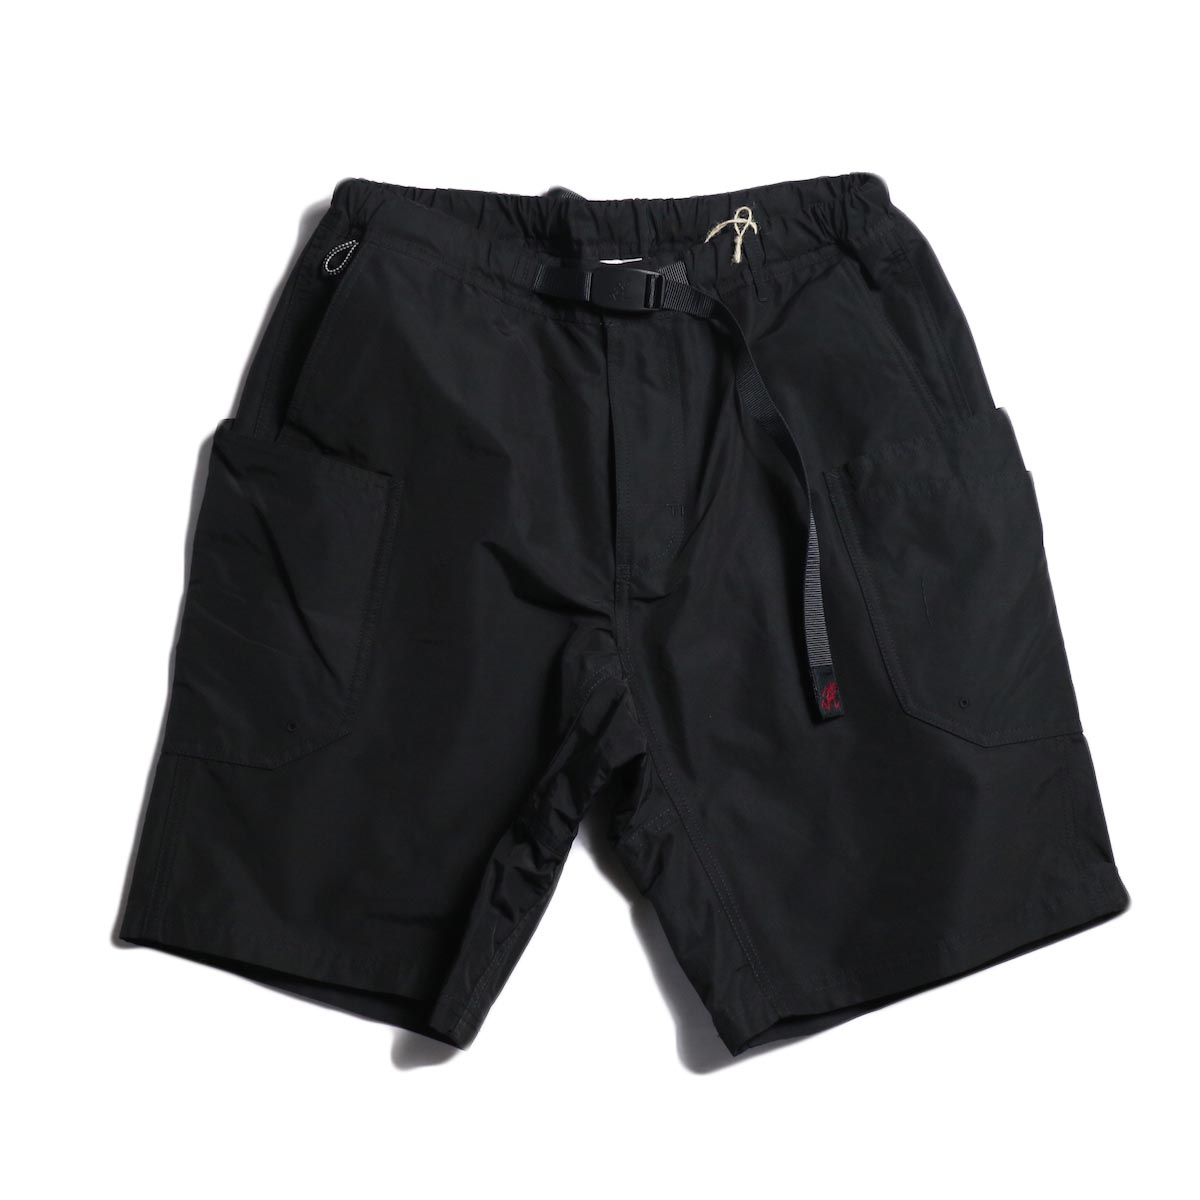 GRAMICCI×GRIP SWANY / CAMP GEAR SHORTS -Black